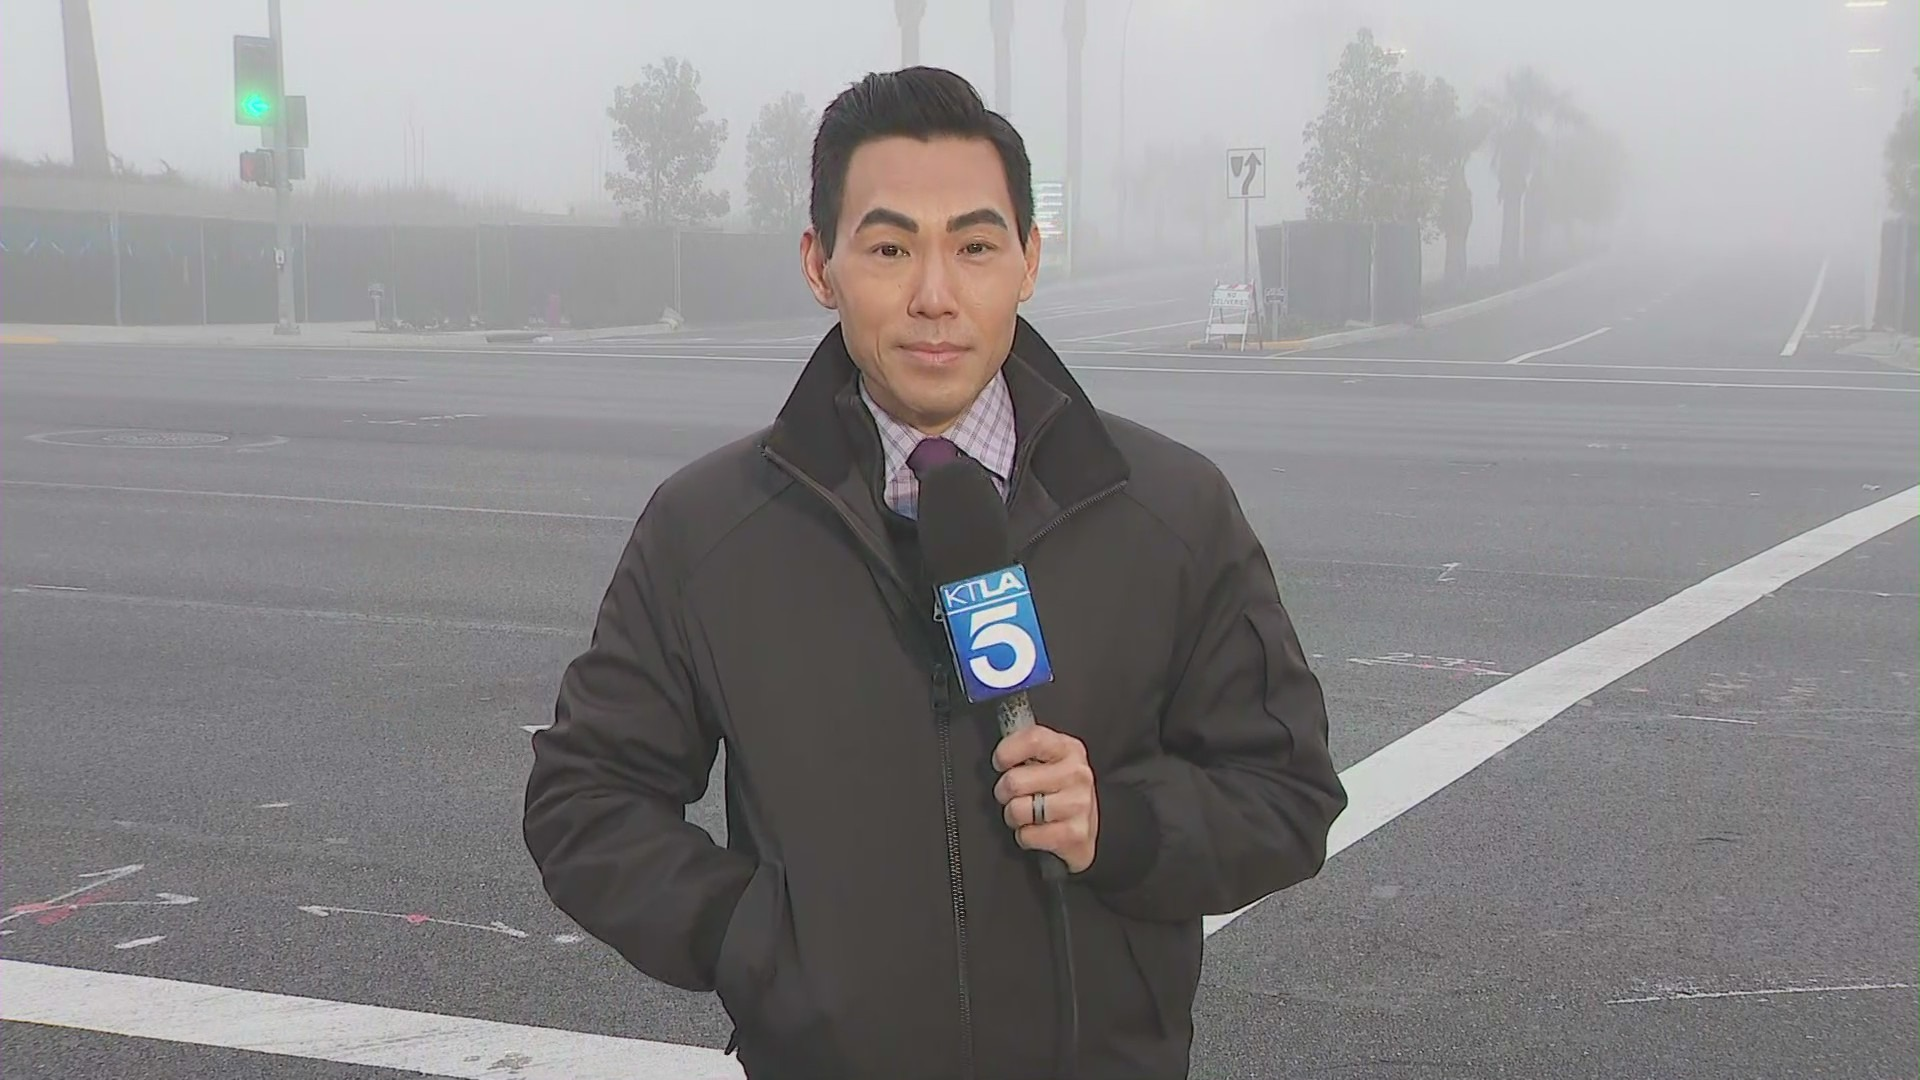 Reporter Gene Kang shared his experience overcoming child abuse and domestic violence in his family, as well as resources for those facing similar challenges, on the KTLA 5 Morning News at 7 on Feb. 7, 2021.